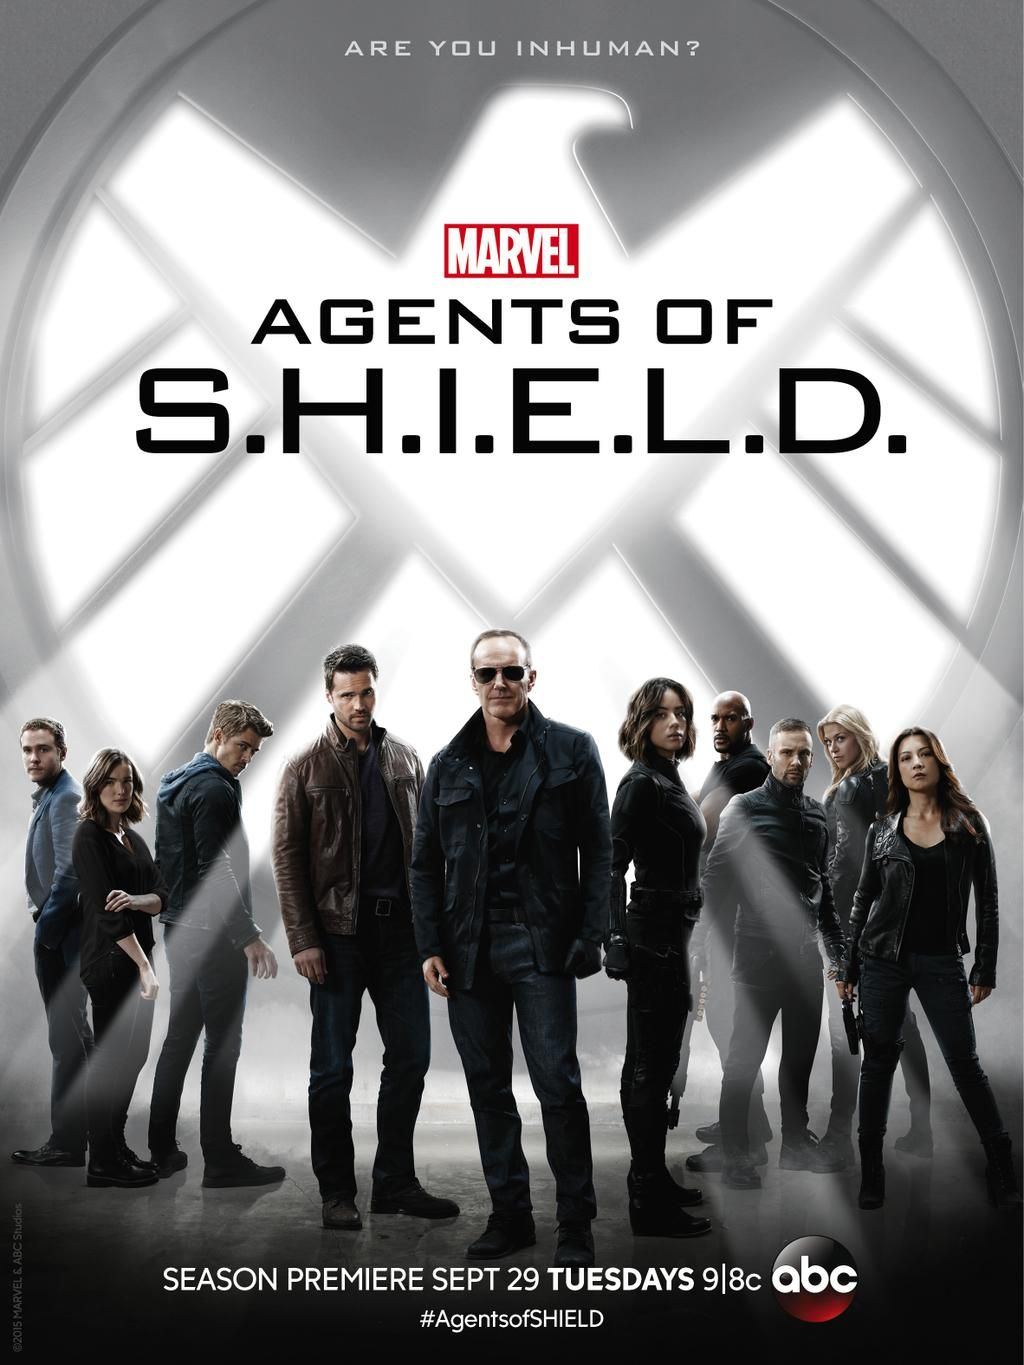 Marvel Entertainment On Twitter Agents Of Shield Marvel Agents Of Shield Agents Of Shield Seasons